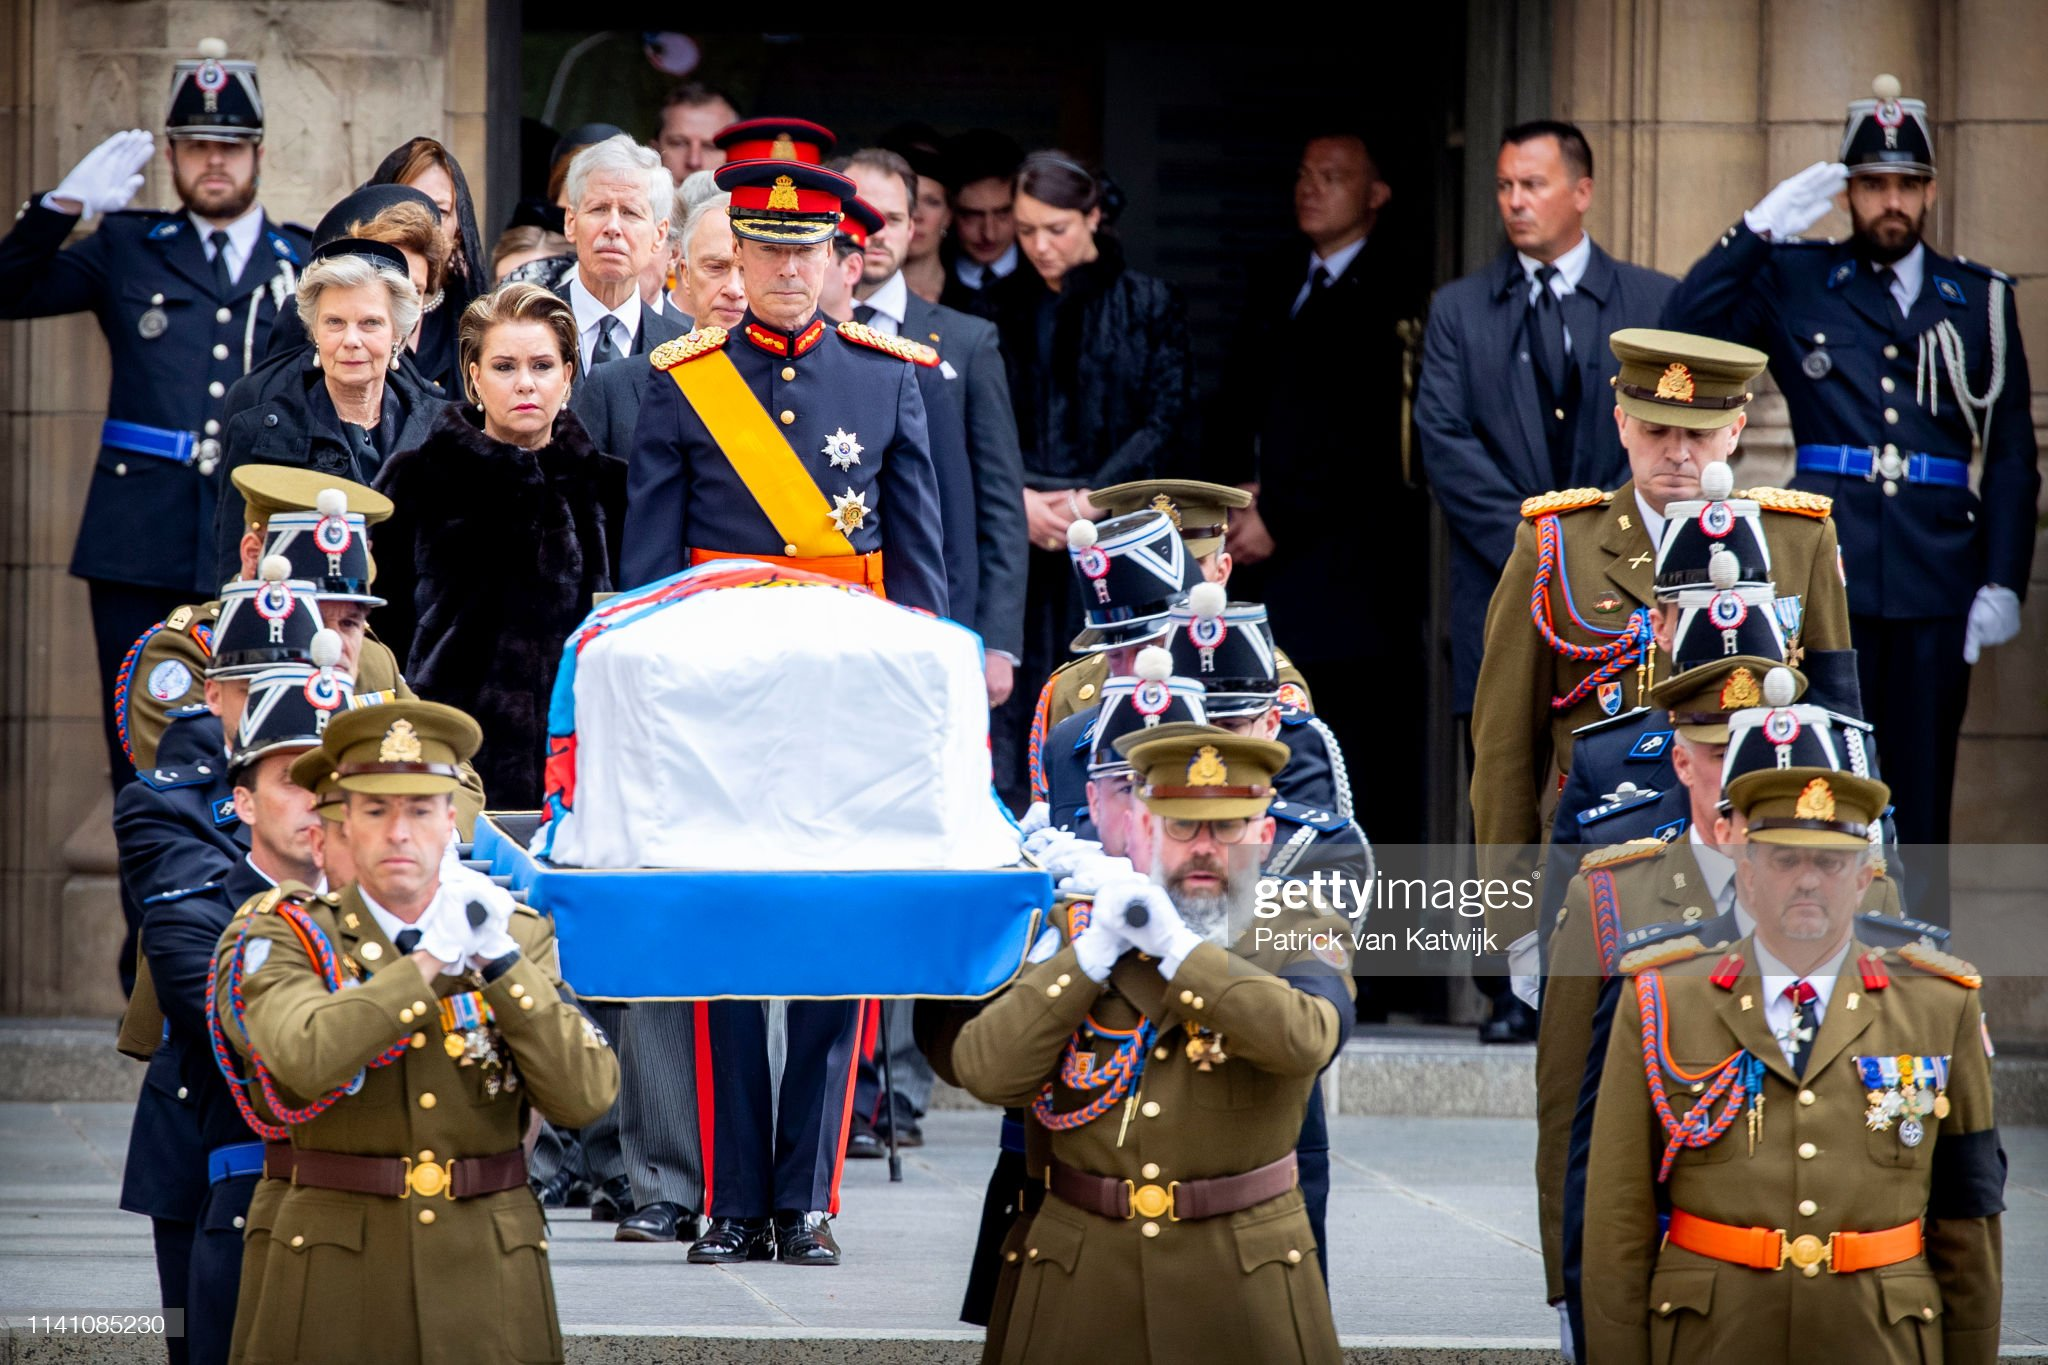 Похороны Великого Герцога Жана https://media.gettyimages.com/photos/grand-duke-henri-of-luxembourg-and-grand-duchess-maria-teresa-of-picture-id1141085230?s=2048x2048